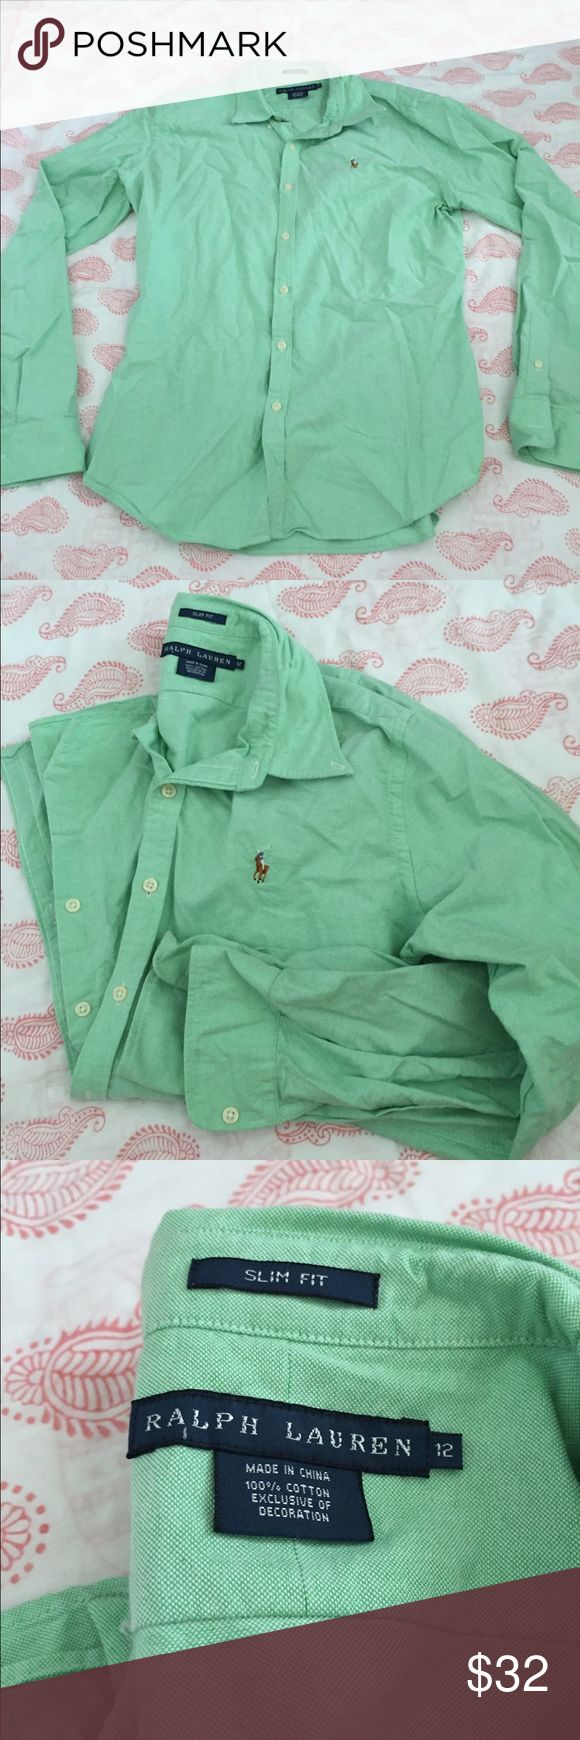 Ralph Lauren Slim Fit Button Down Oxford Light green women's Oxford polo. Excellent used condition. Ralph Lauren Tops Button Down Shirts